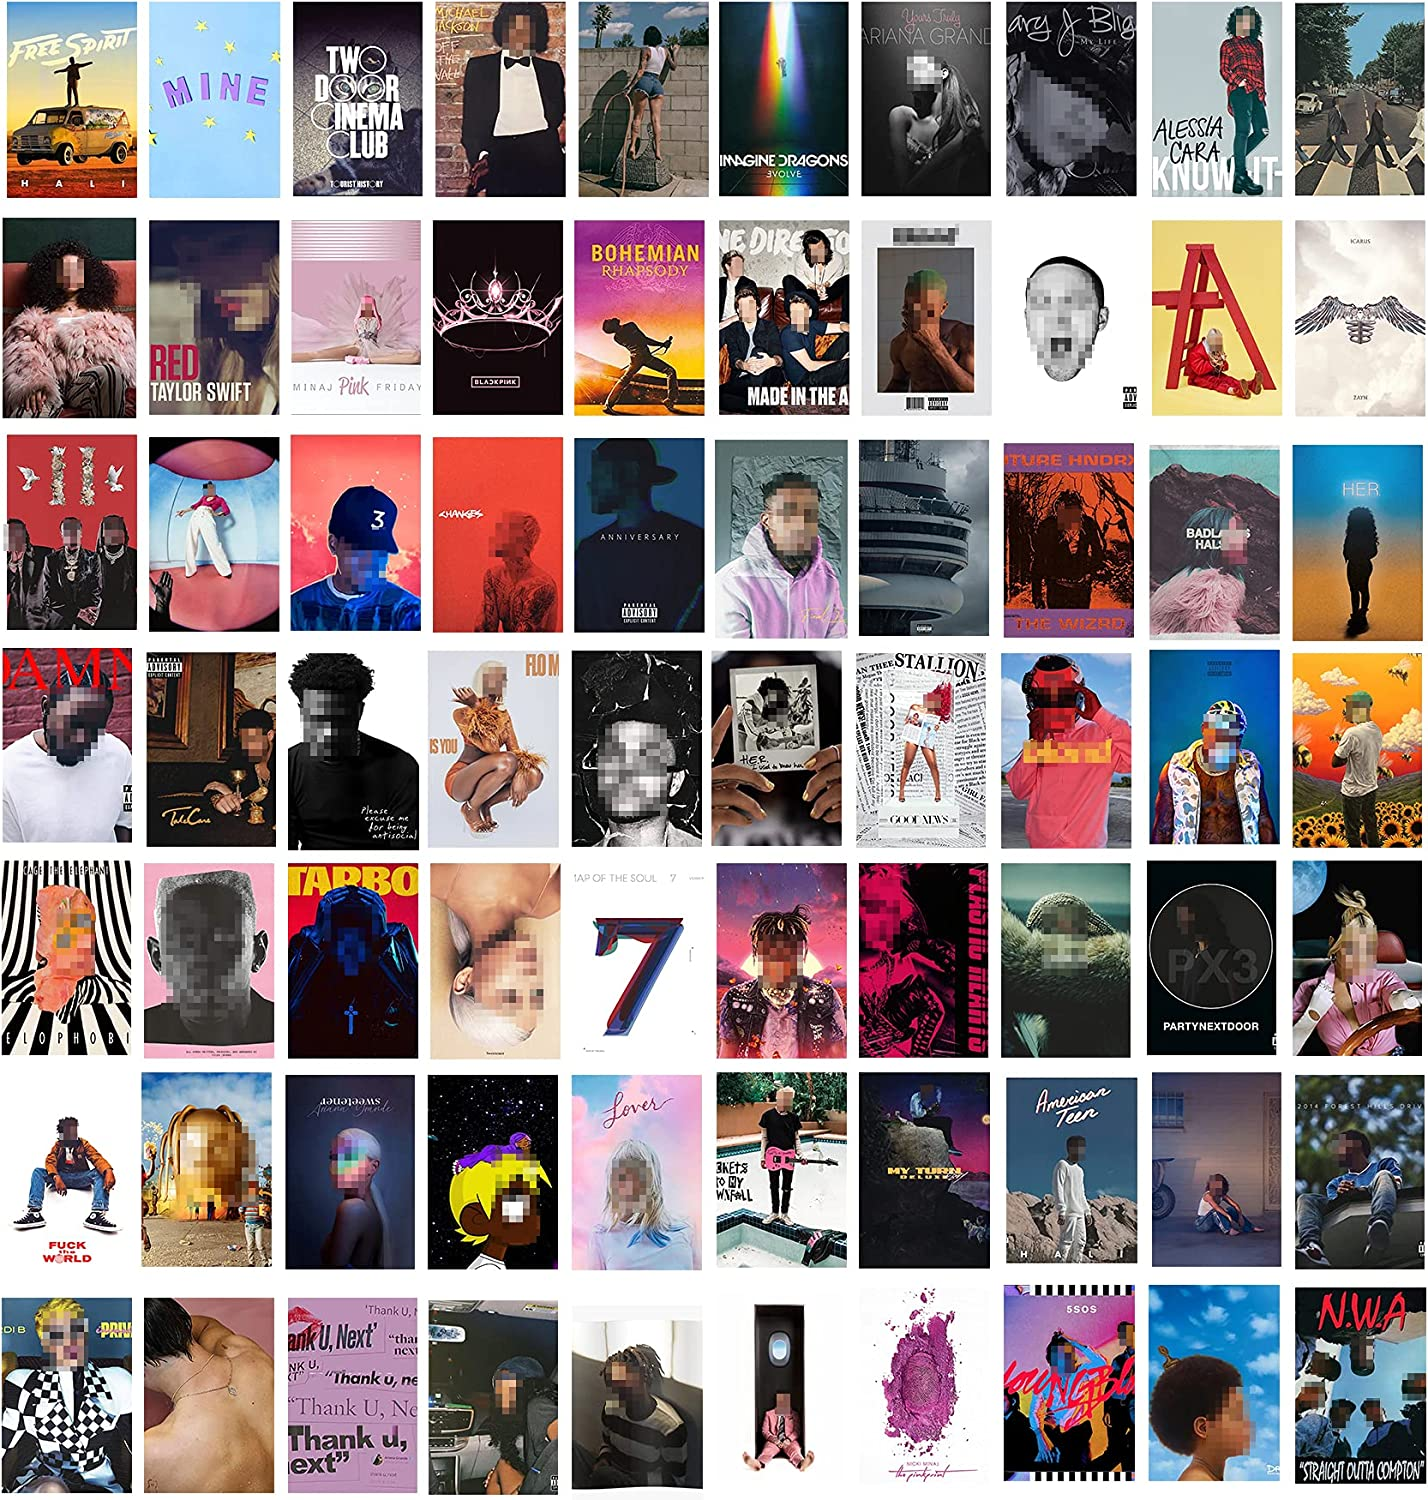 Adzt's 70PCS Album Cover Aesthetic Pictures Wall Collage Kit, Album Style Photo Collection Collage VSCO Bedroom Dorm Decor for Girl and Boy Teens, Trendy Wall Prints Kit, Small Poster for Room Bedroom Aesthetic